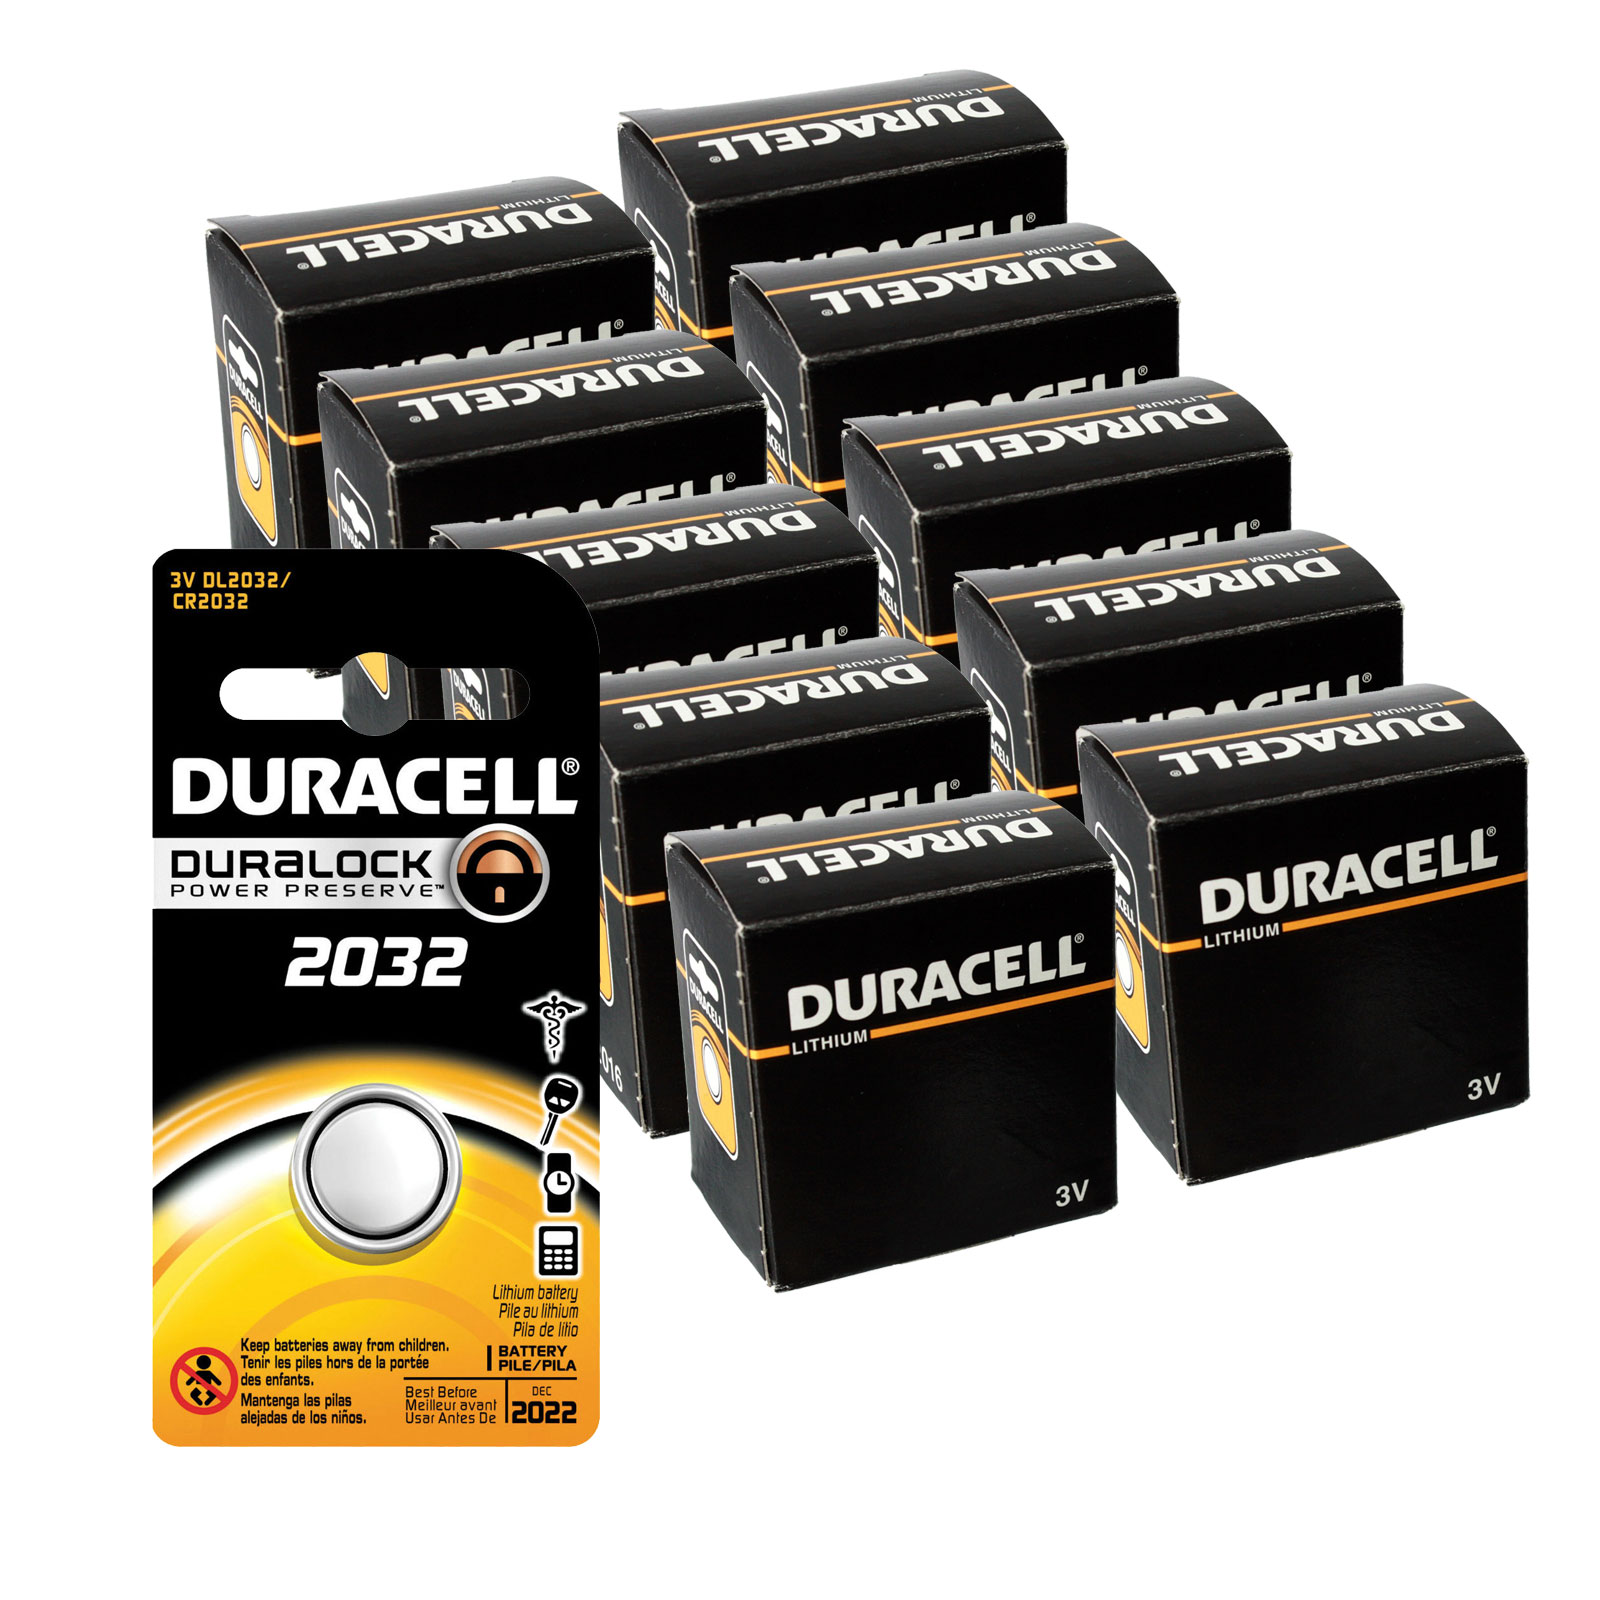 100pc duracell coin cell battery cr2032 3v lithium. Black Bedroom Furniture Sets. Home Design Ideas